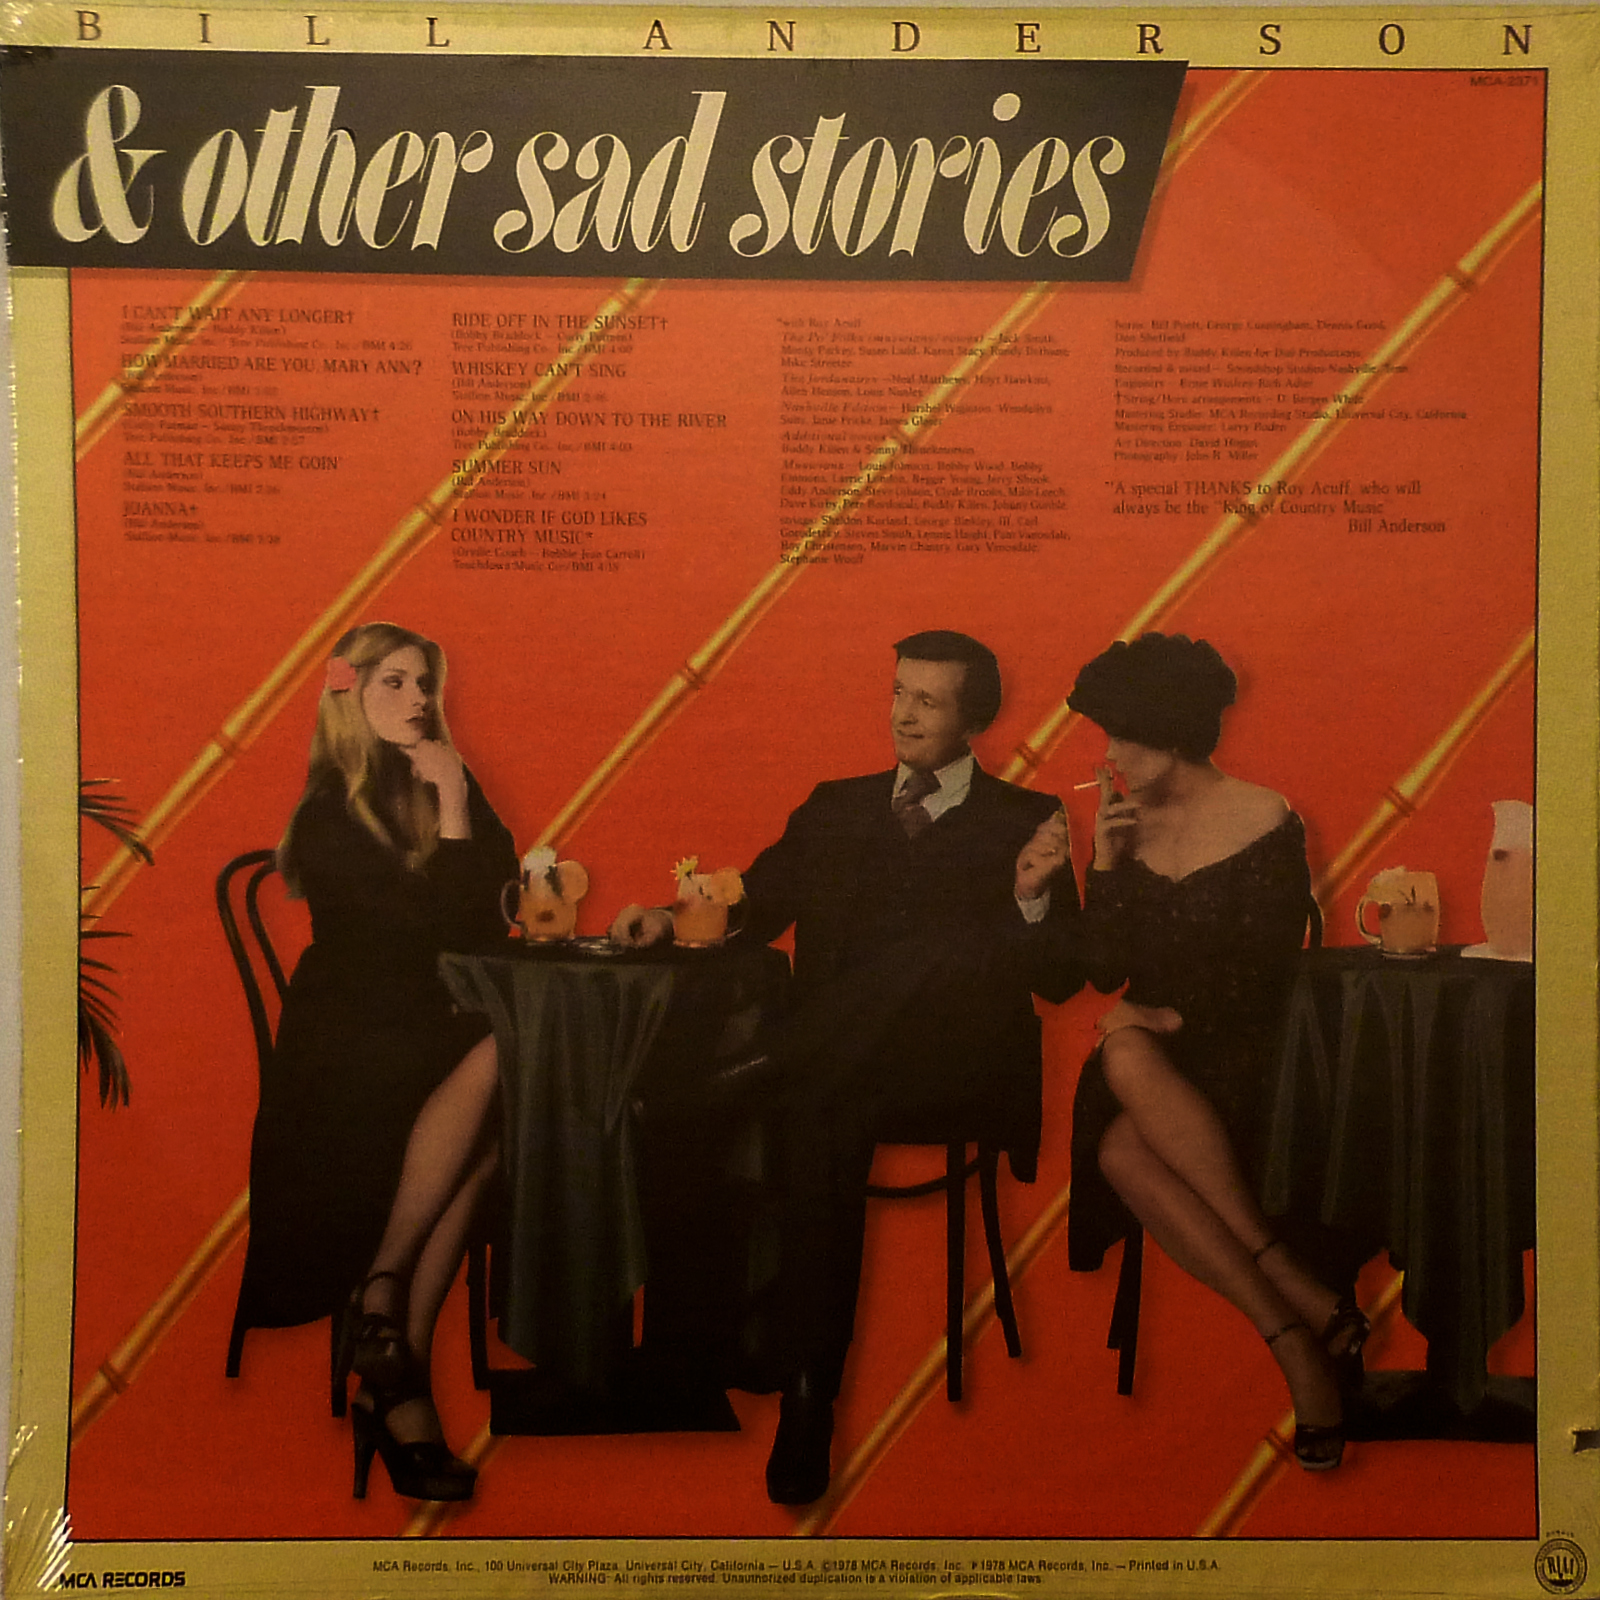 Bill Anderson Love And Other Sad Stories LP